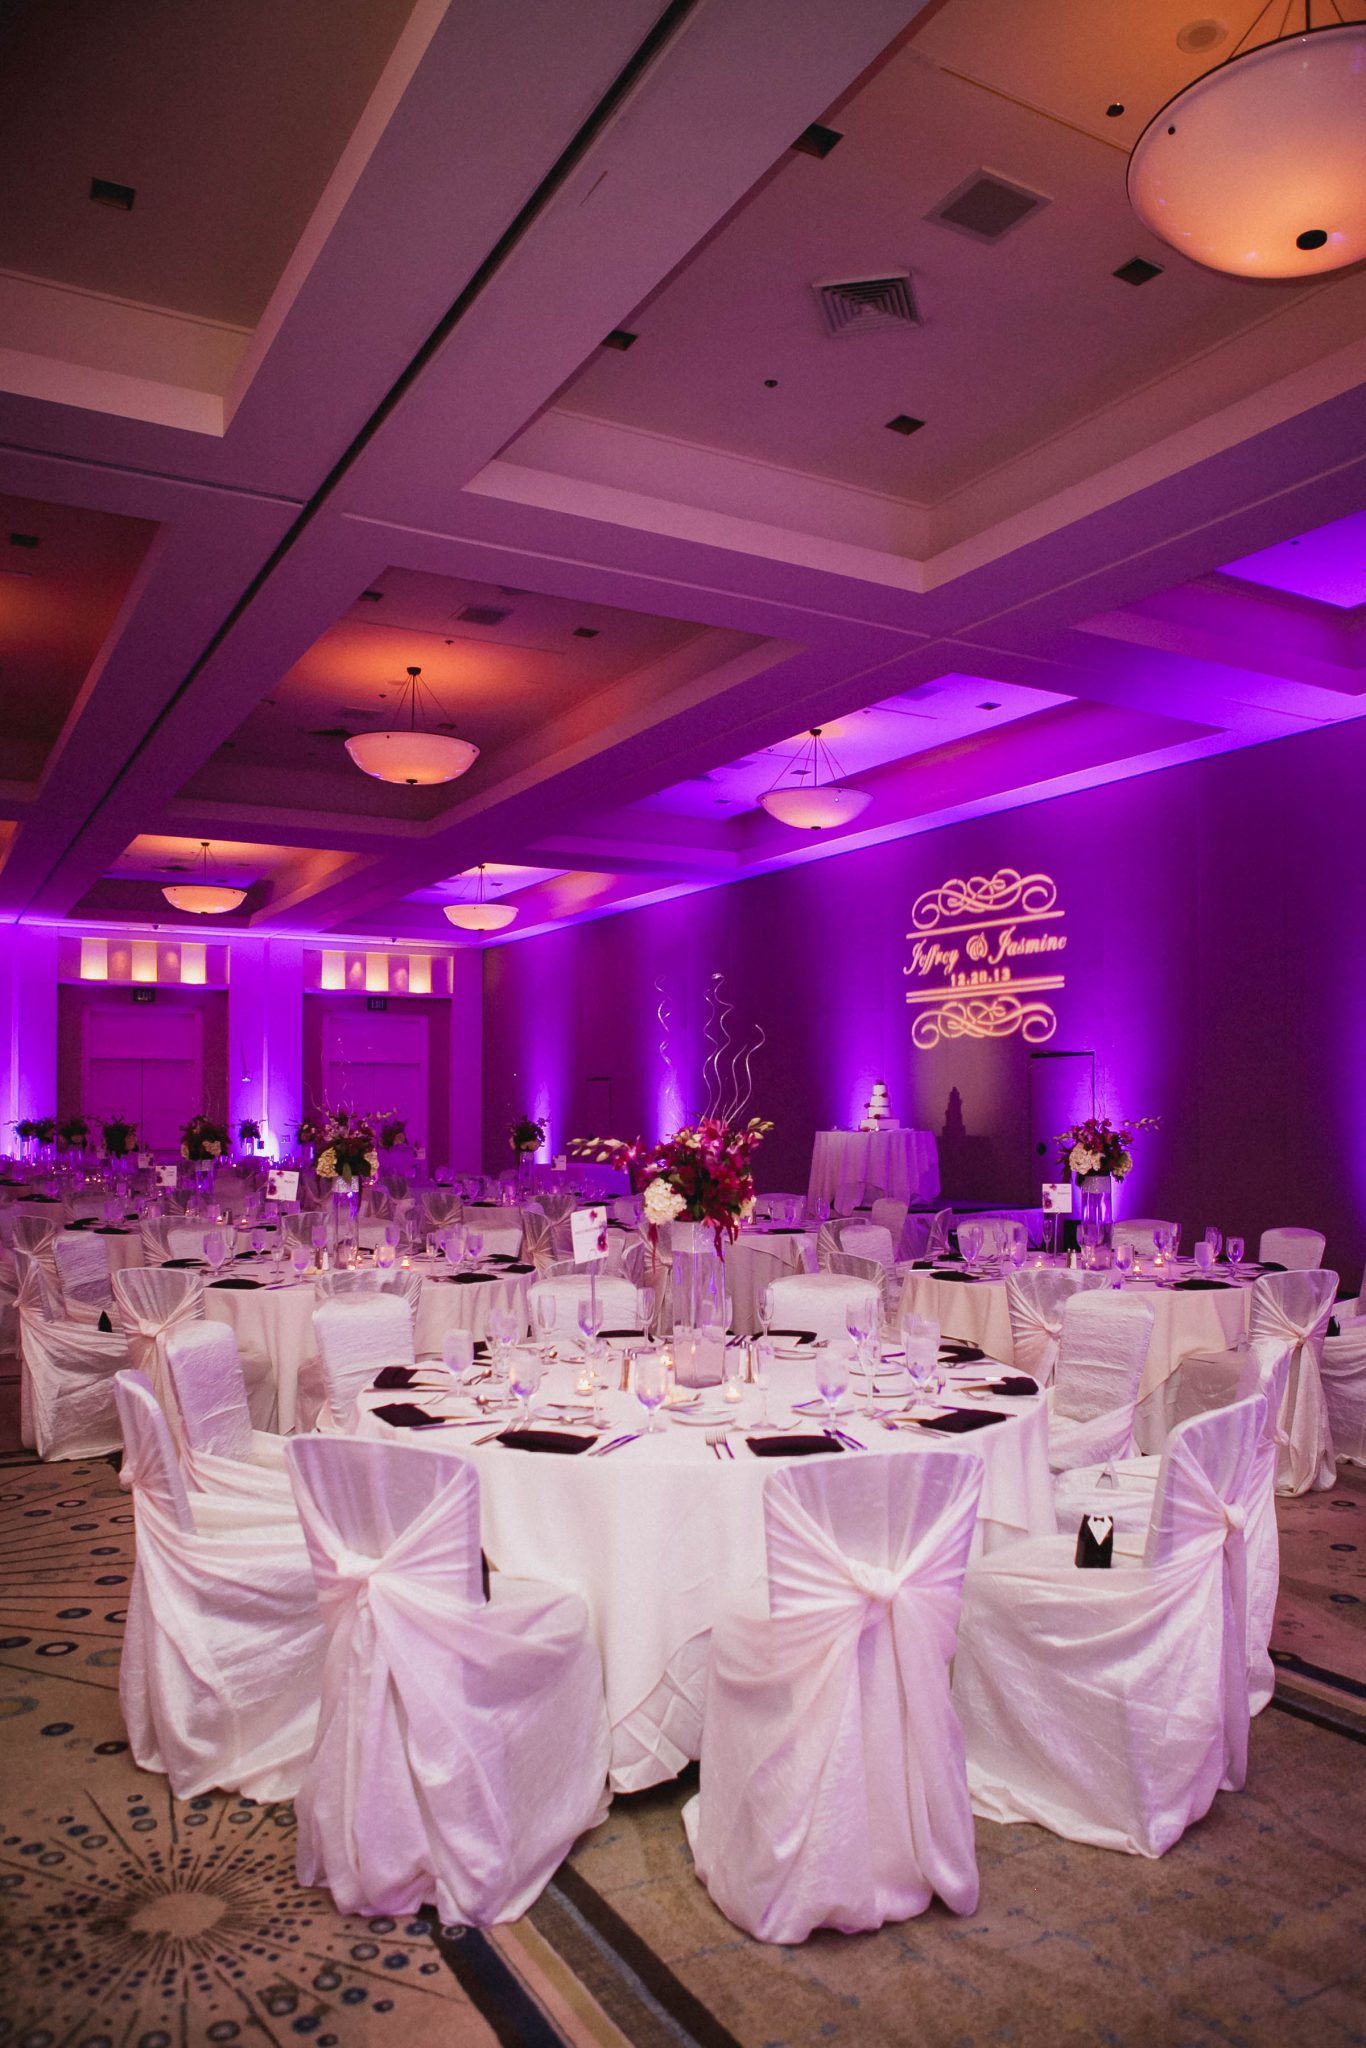 Wedding reception venue with purple uplights on the walls